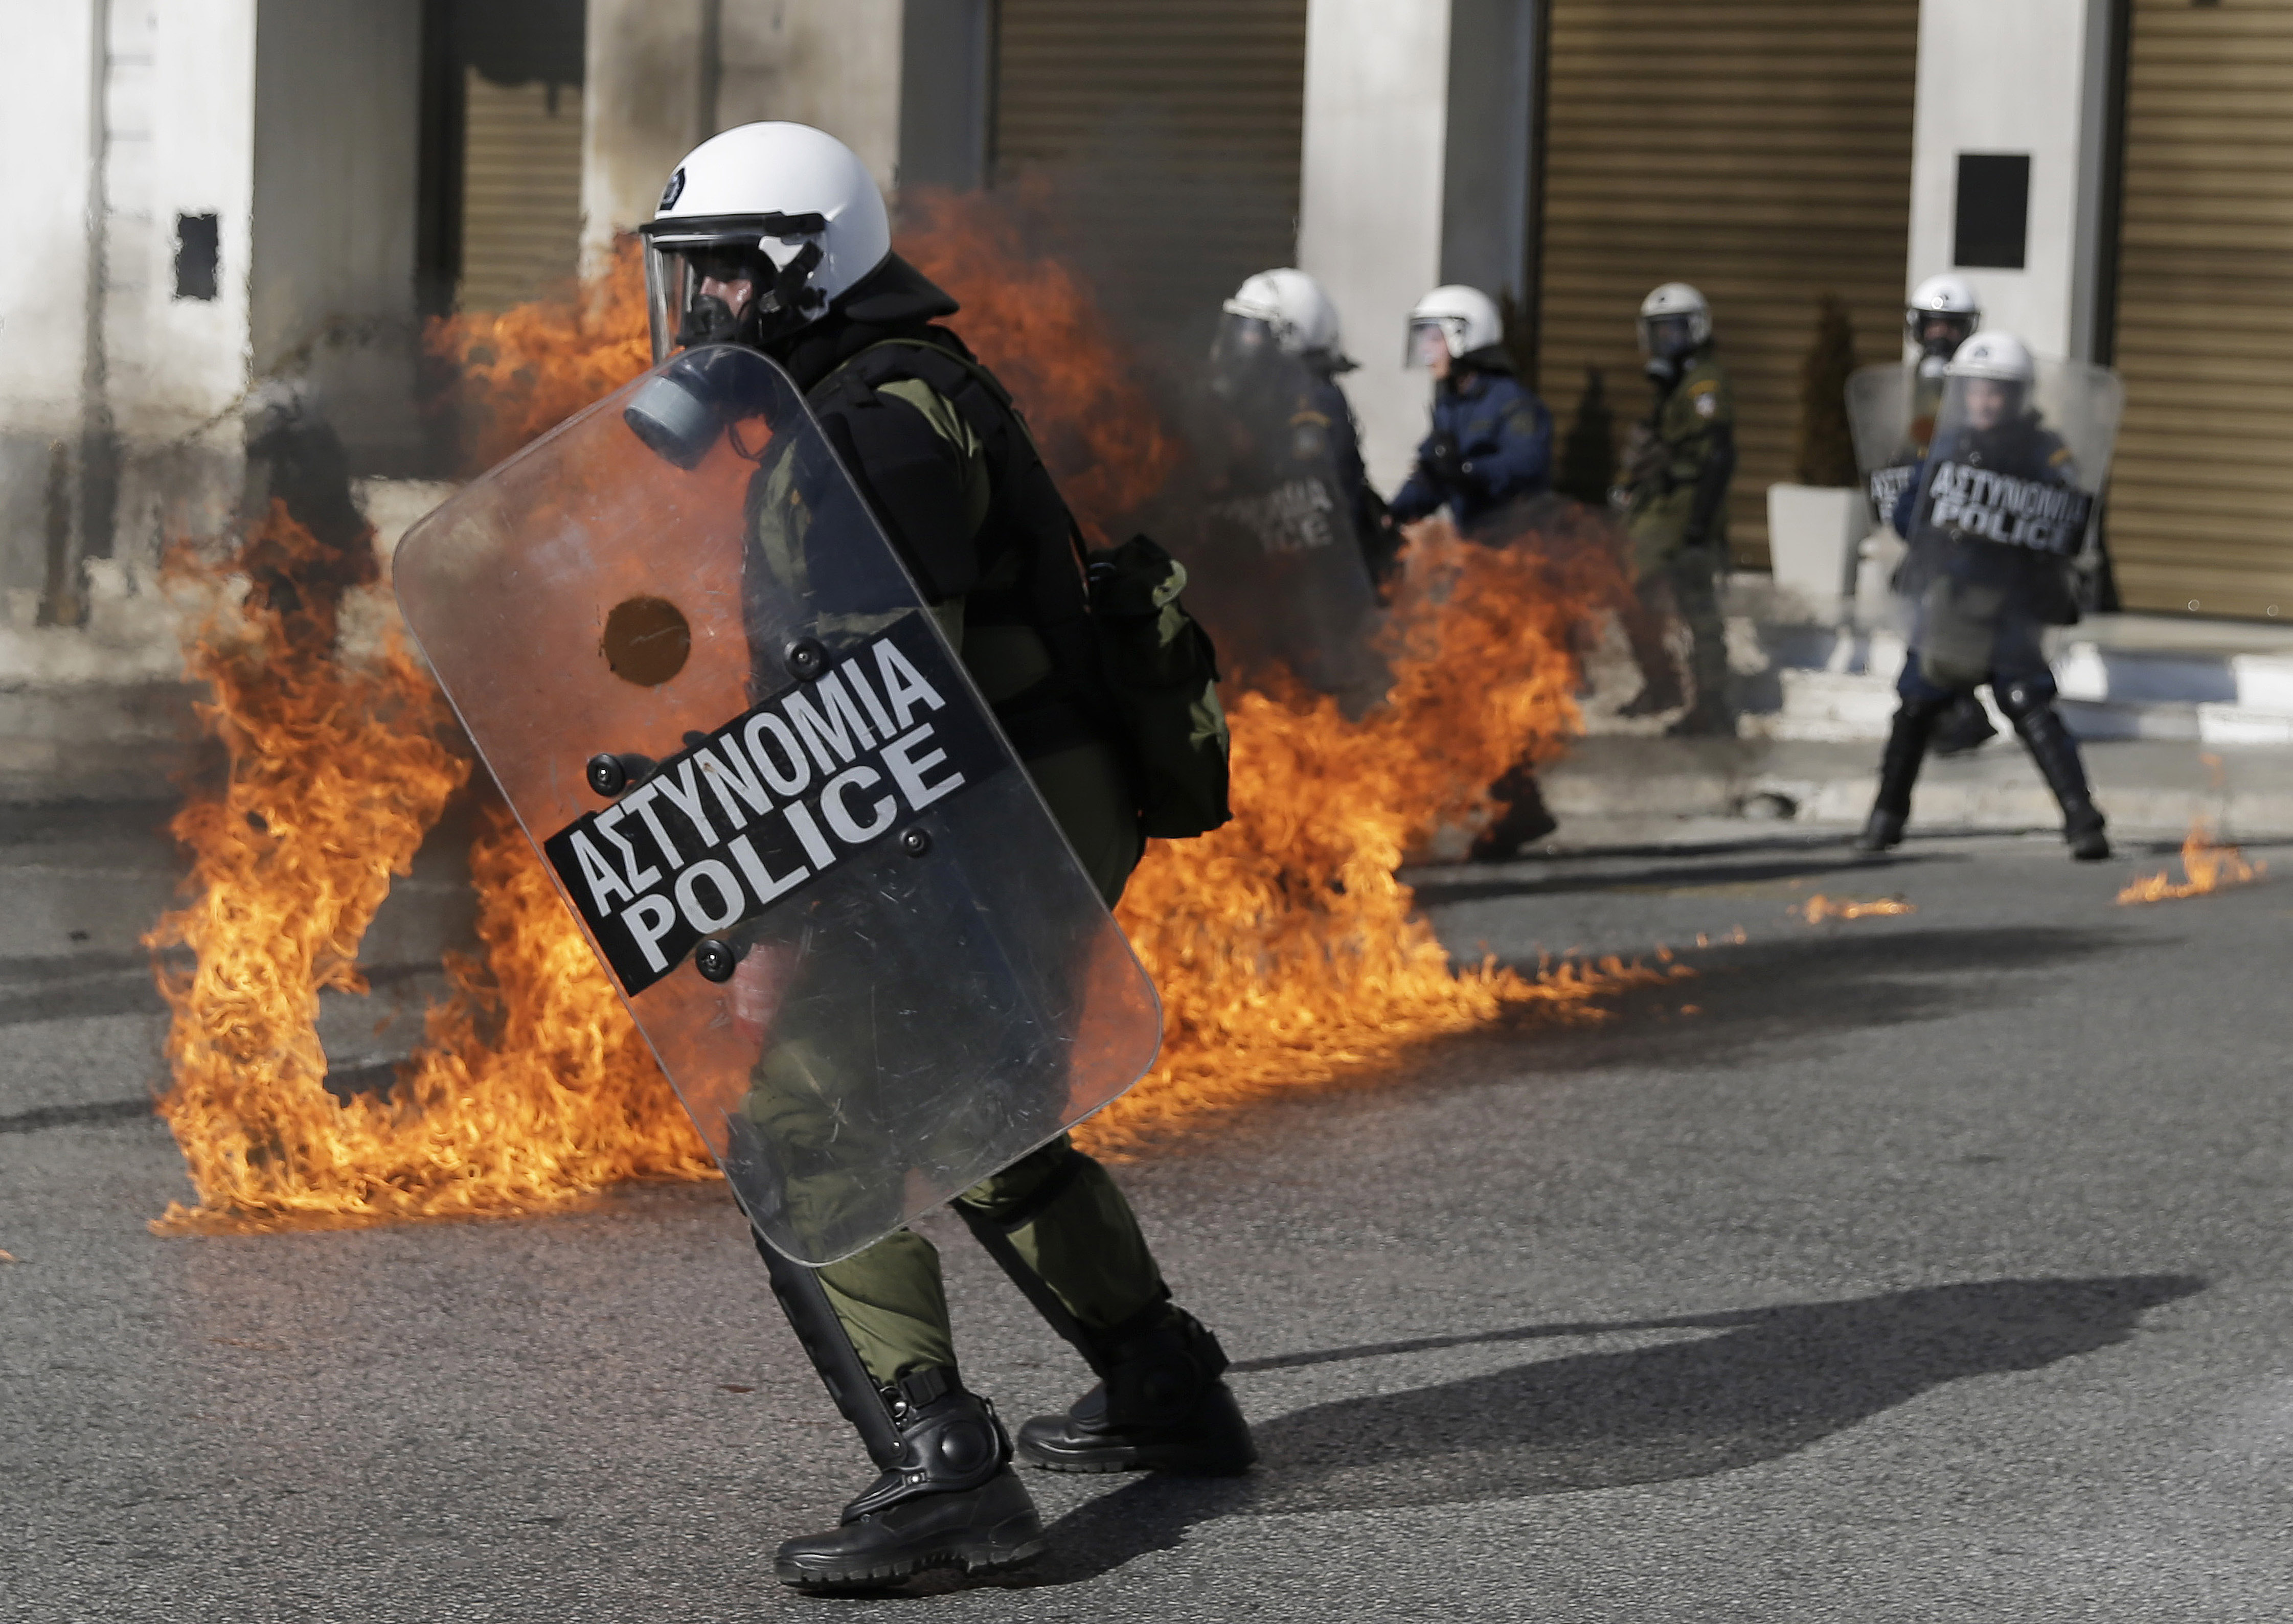 Riot policemen dodge petrol bombs thrown by protesters Nov. 12, 2015, during a rally in Athens. Clashes have broken out as the country faces its first general strike since the Greece's left-led government came to power in January.